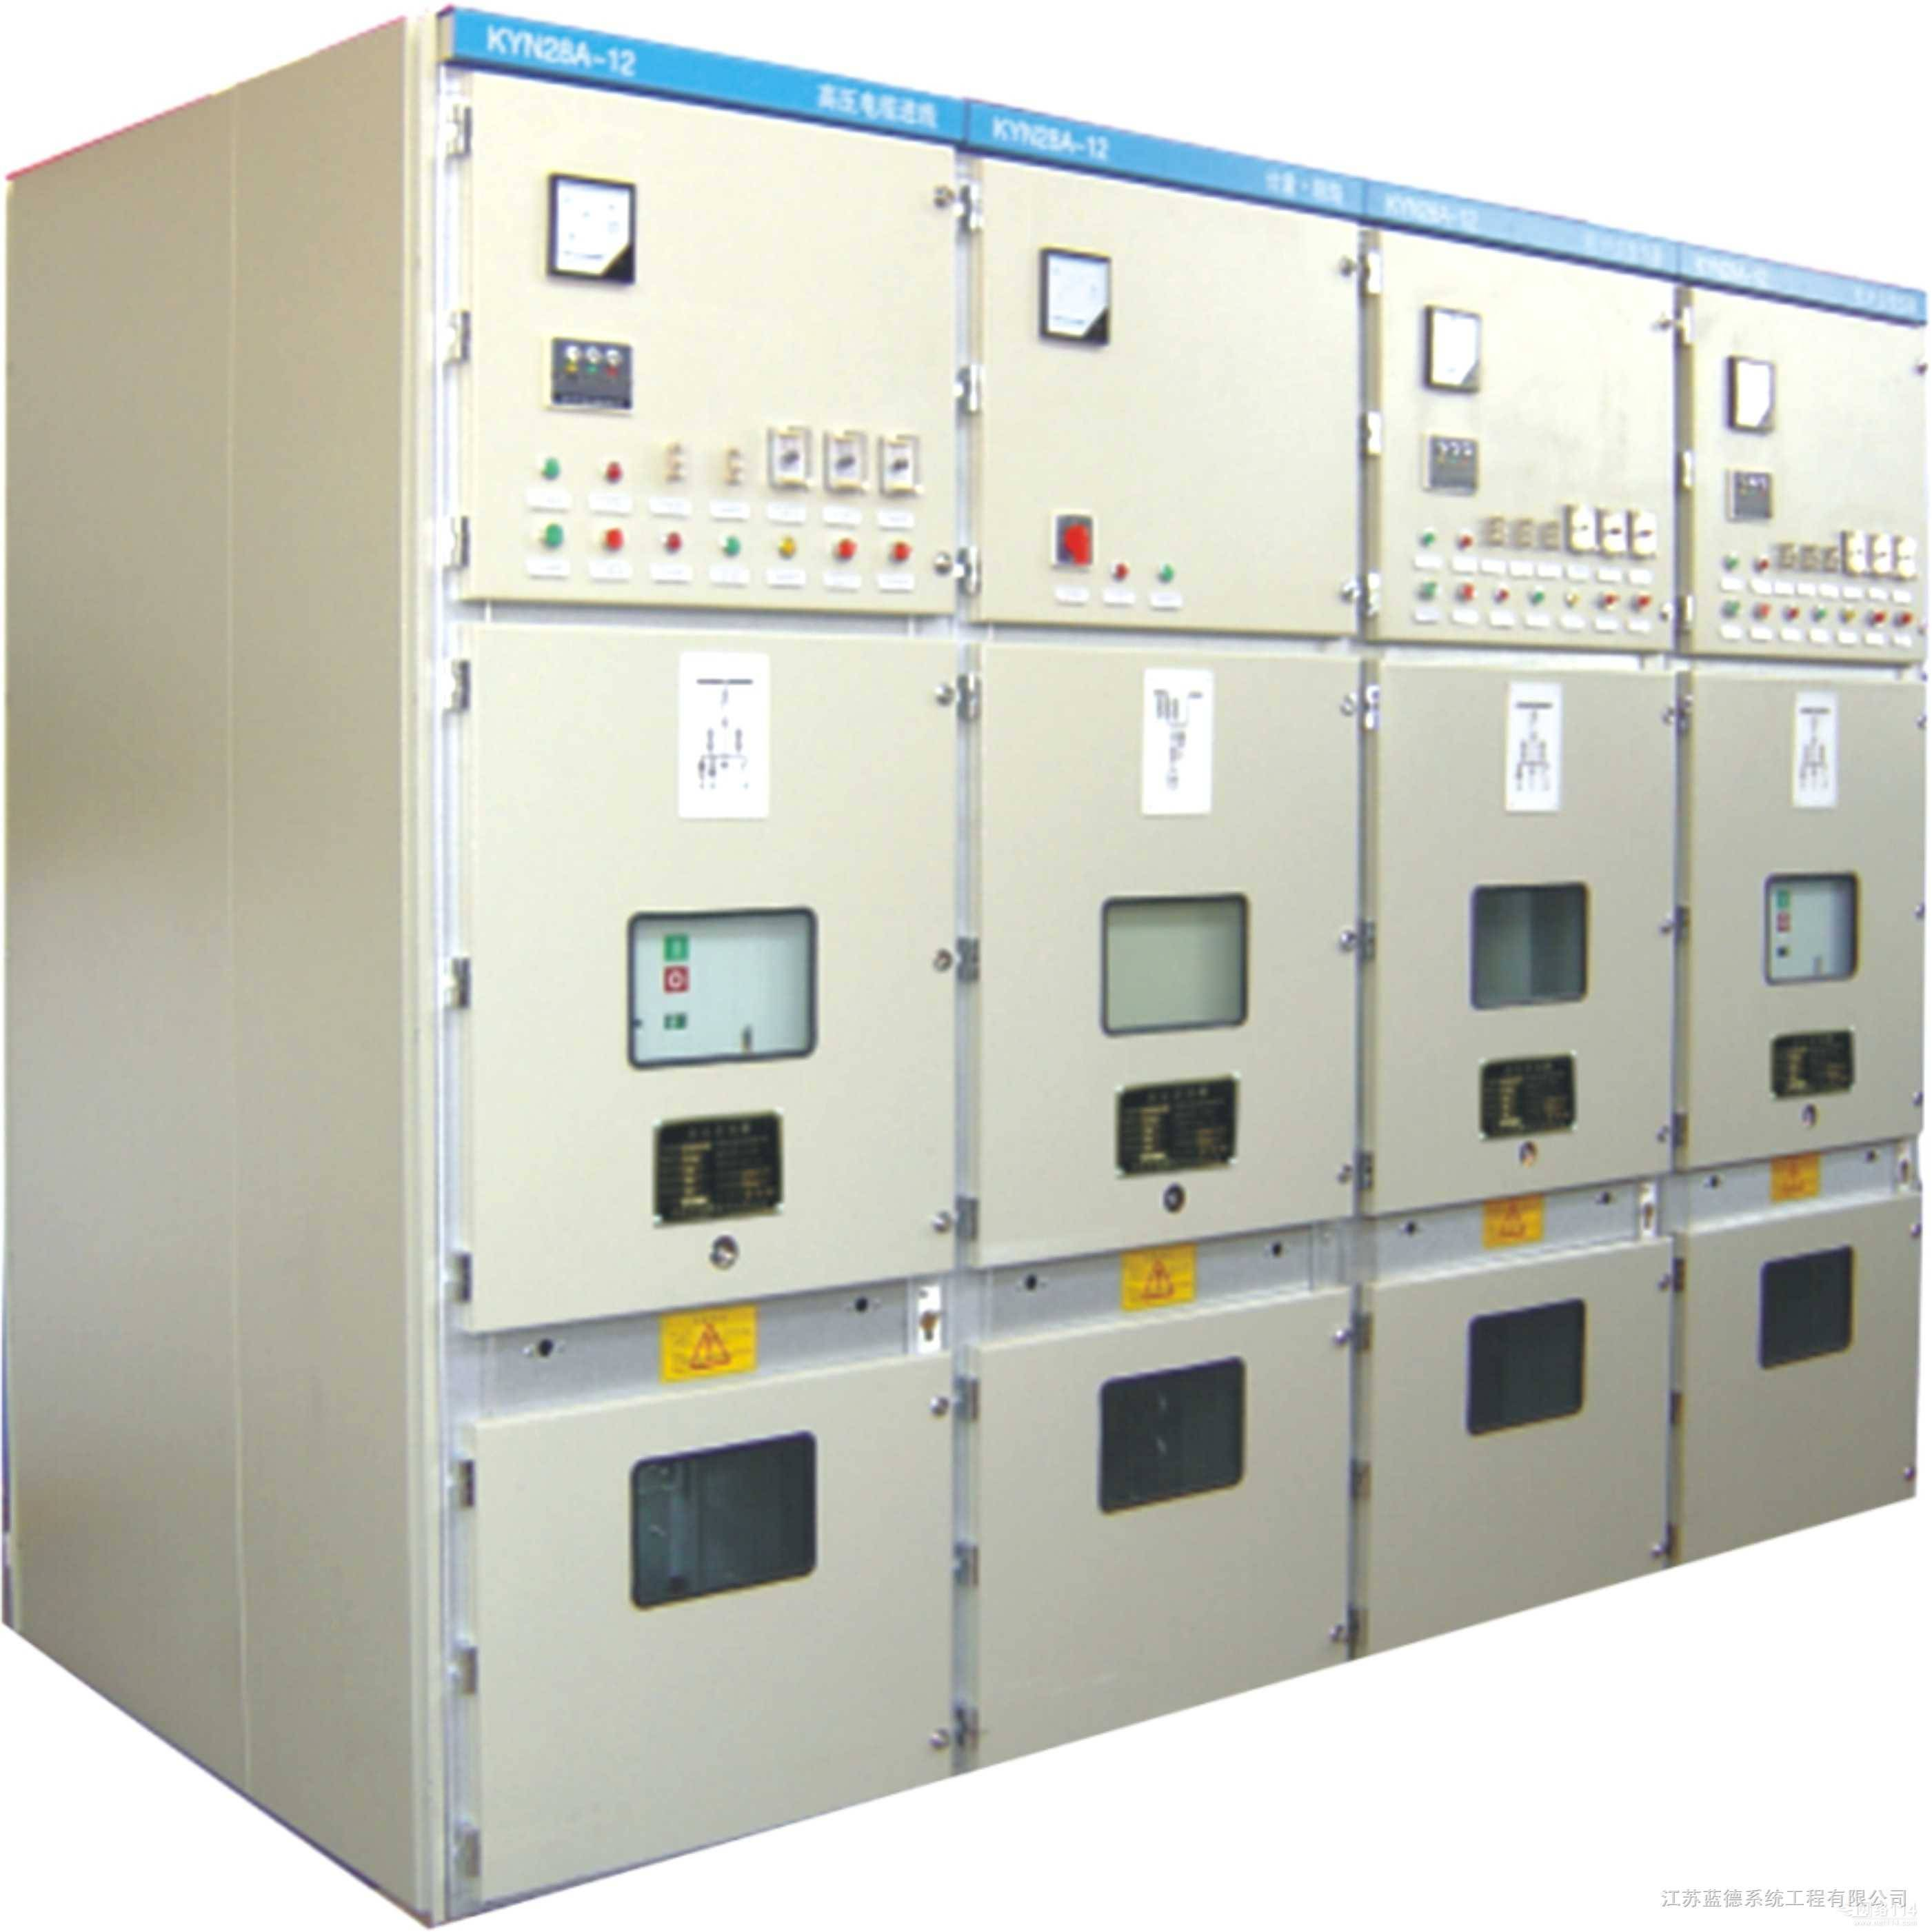 Low Voltage Power Distribution Cabinet/Electrical Control Equipment